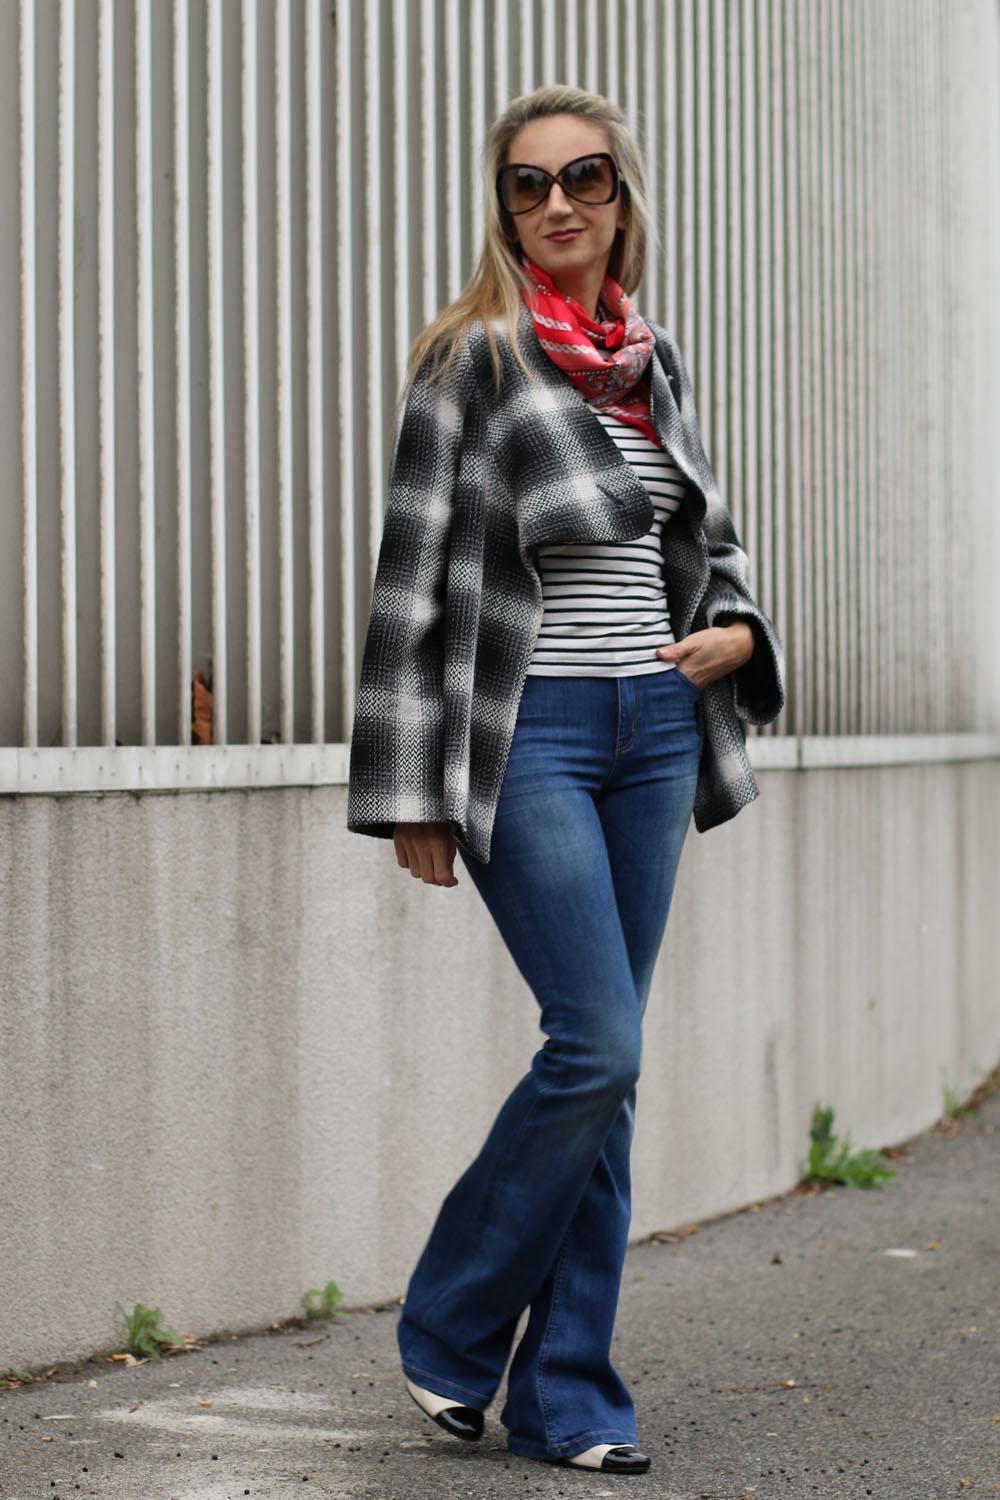 colourclub-schlaghose-trend-flared-jeans-marry-jane-pumps-stripes-shirt8